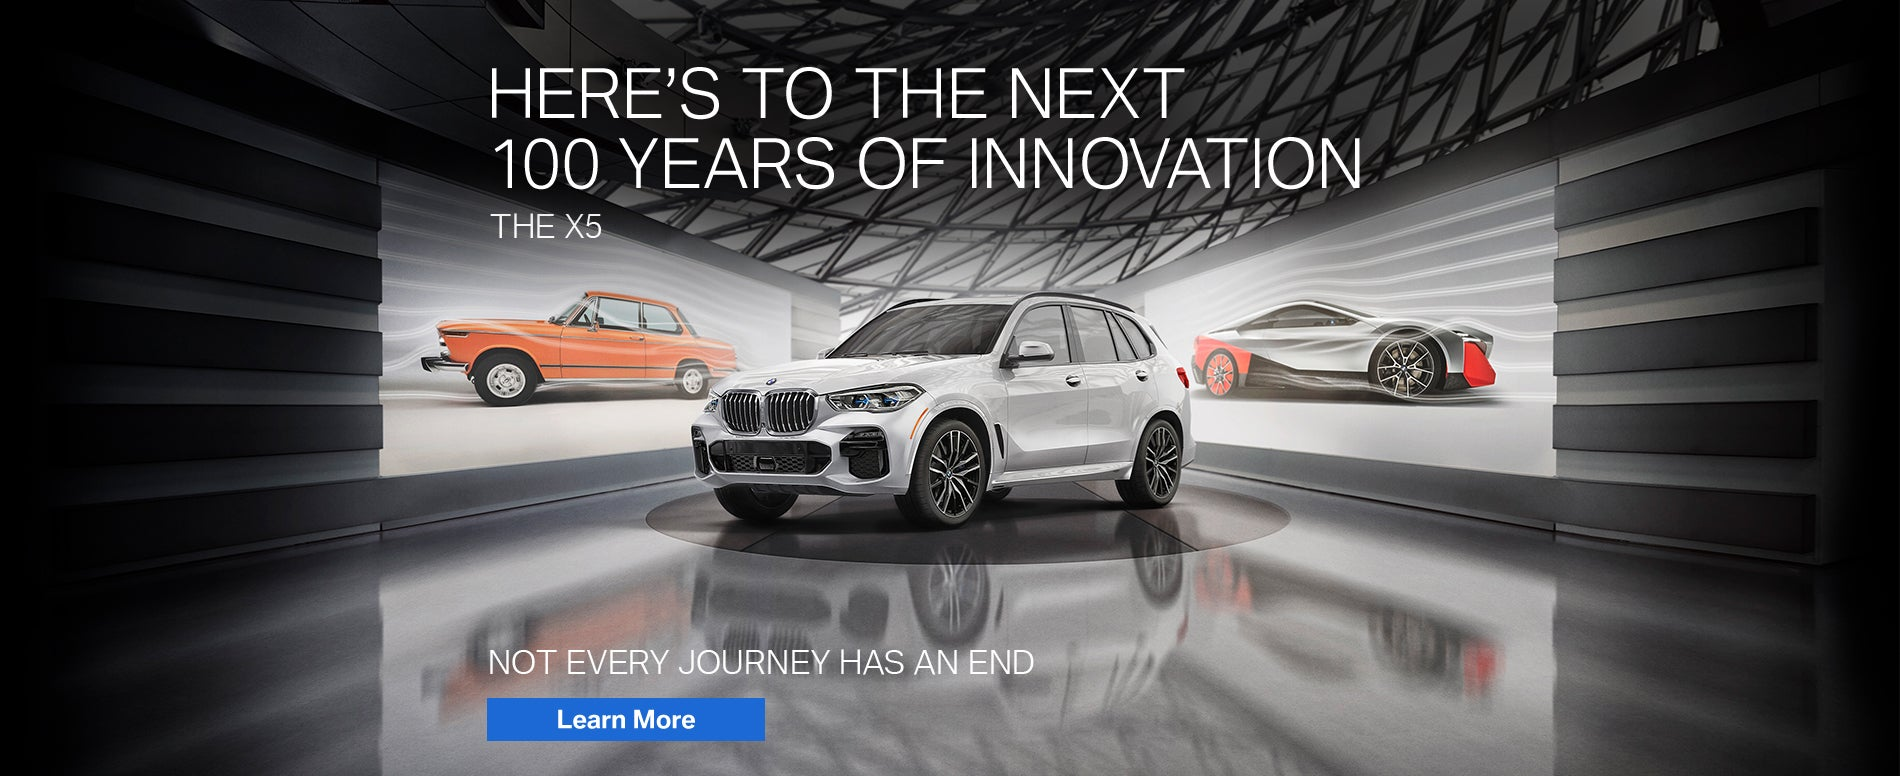 BMW of Morristown | BMW Dealer Morristown, NJ | New and Used